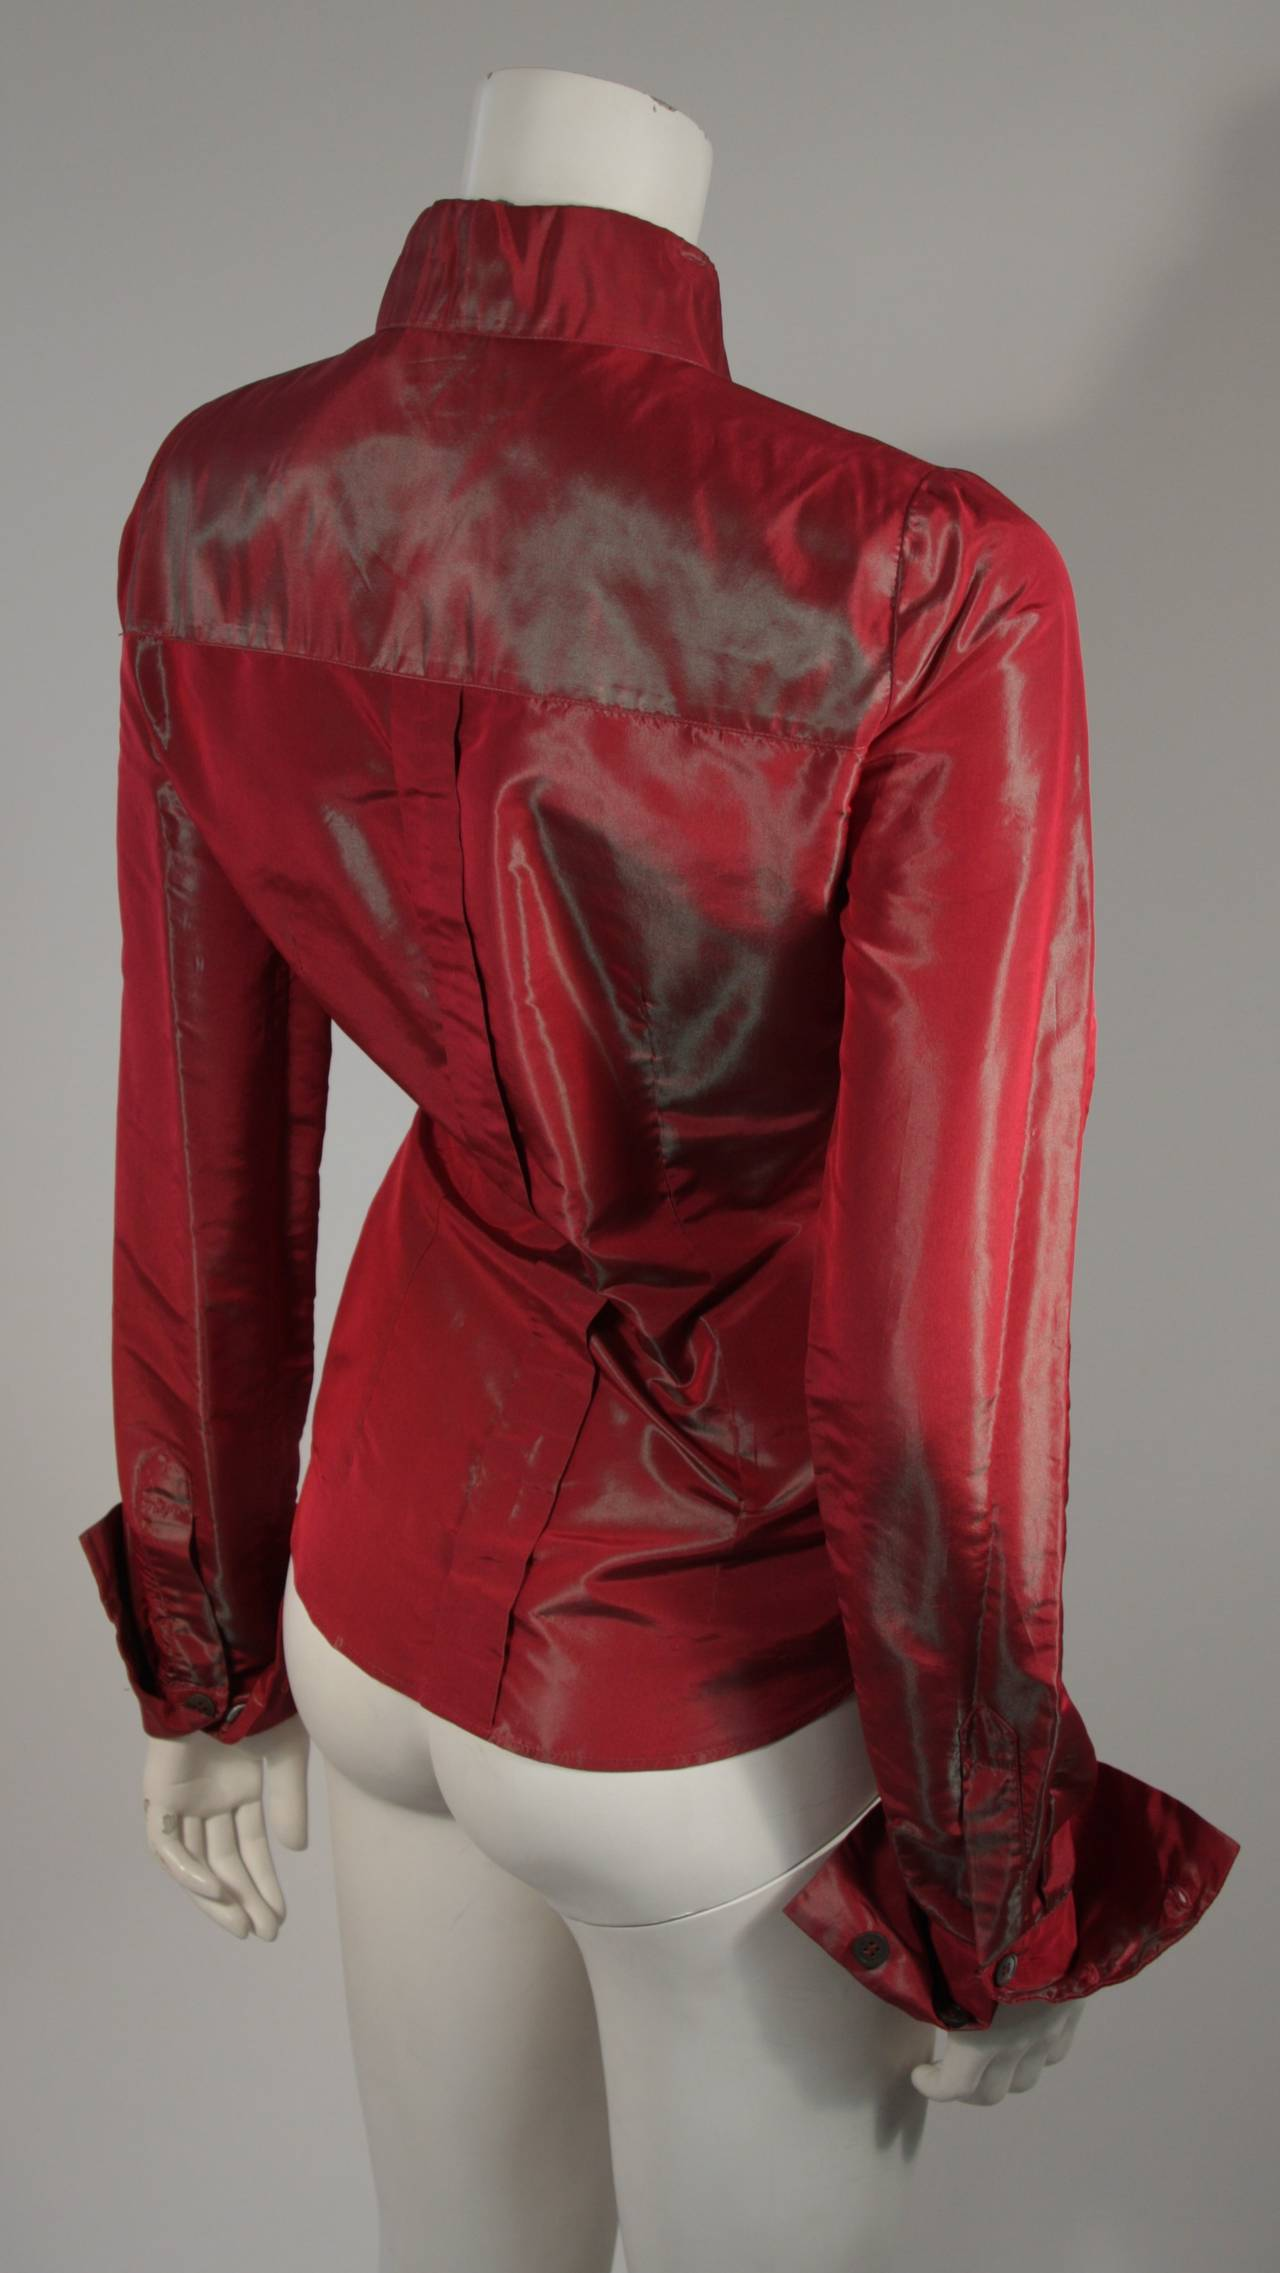 Women's Romeo Gigli Red Iridescent Shirt Size 42 For Sale